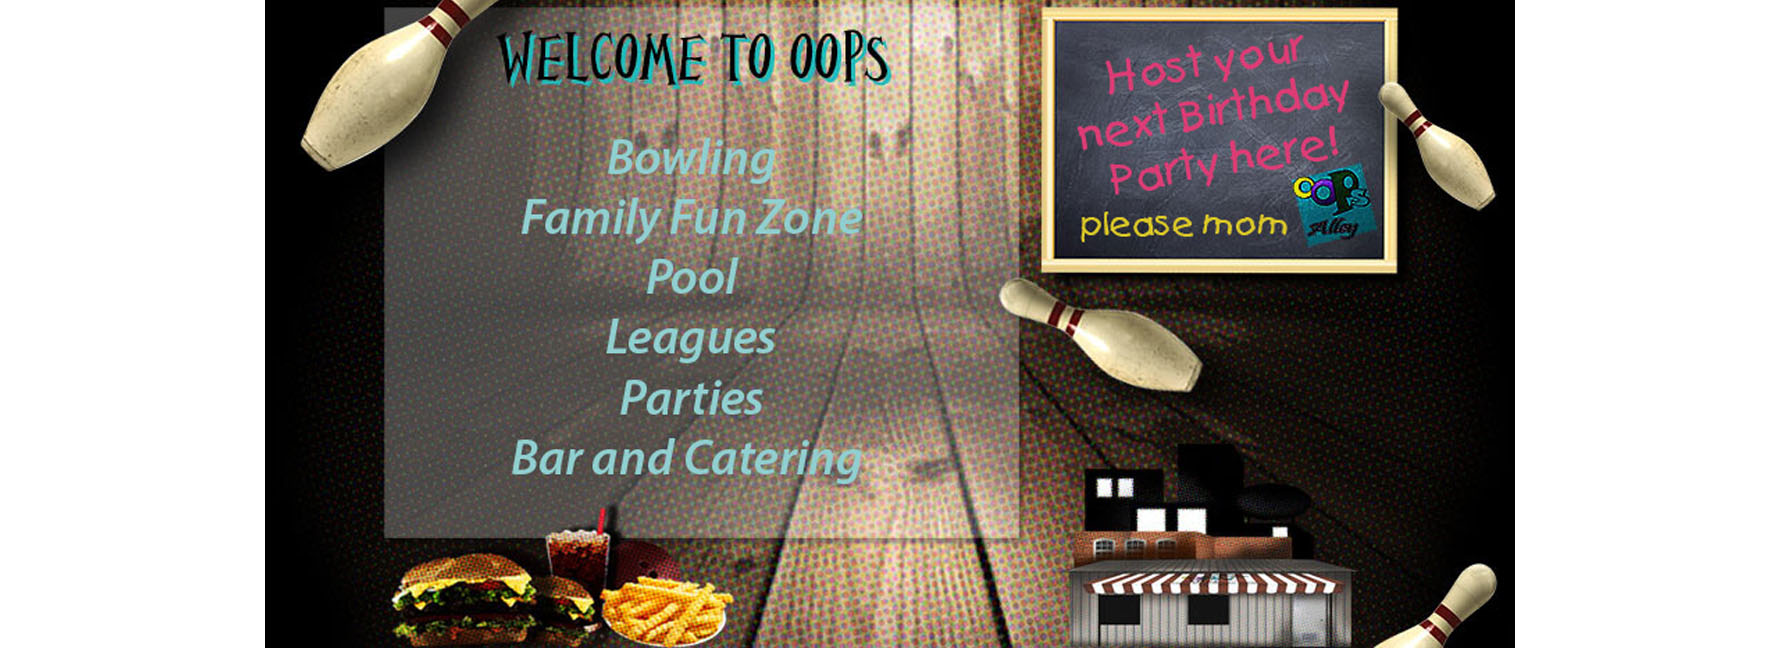 Welcome to Oops! Host your next birthday party here!